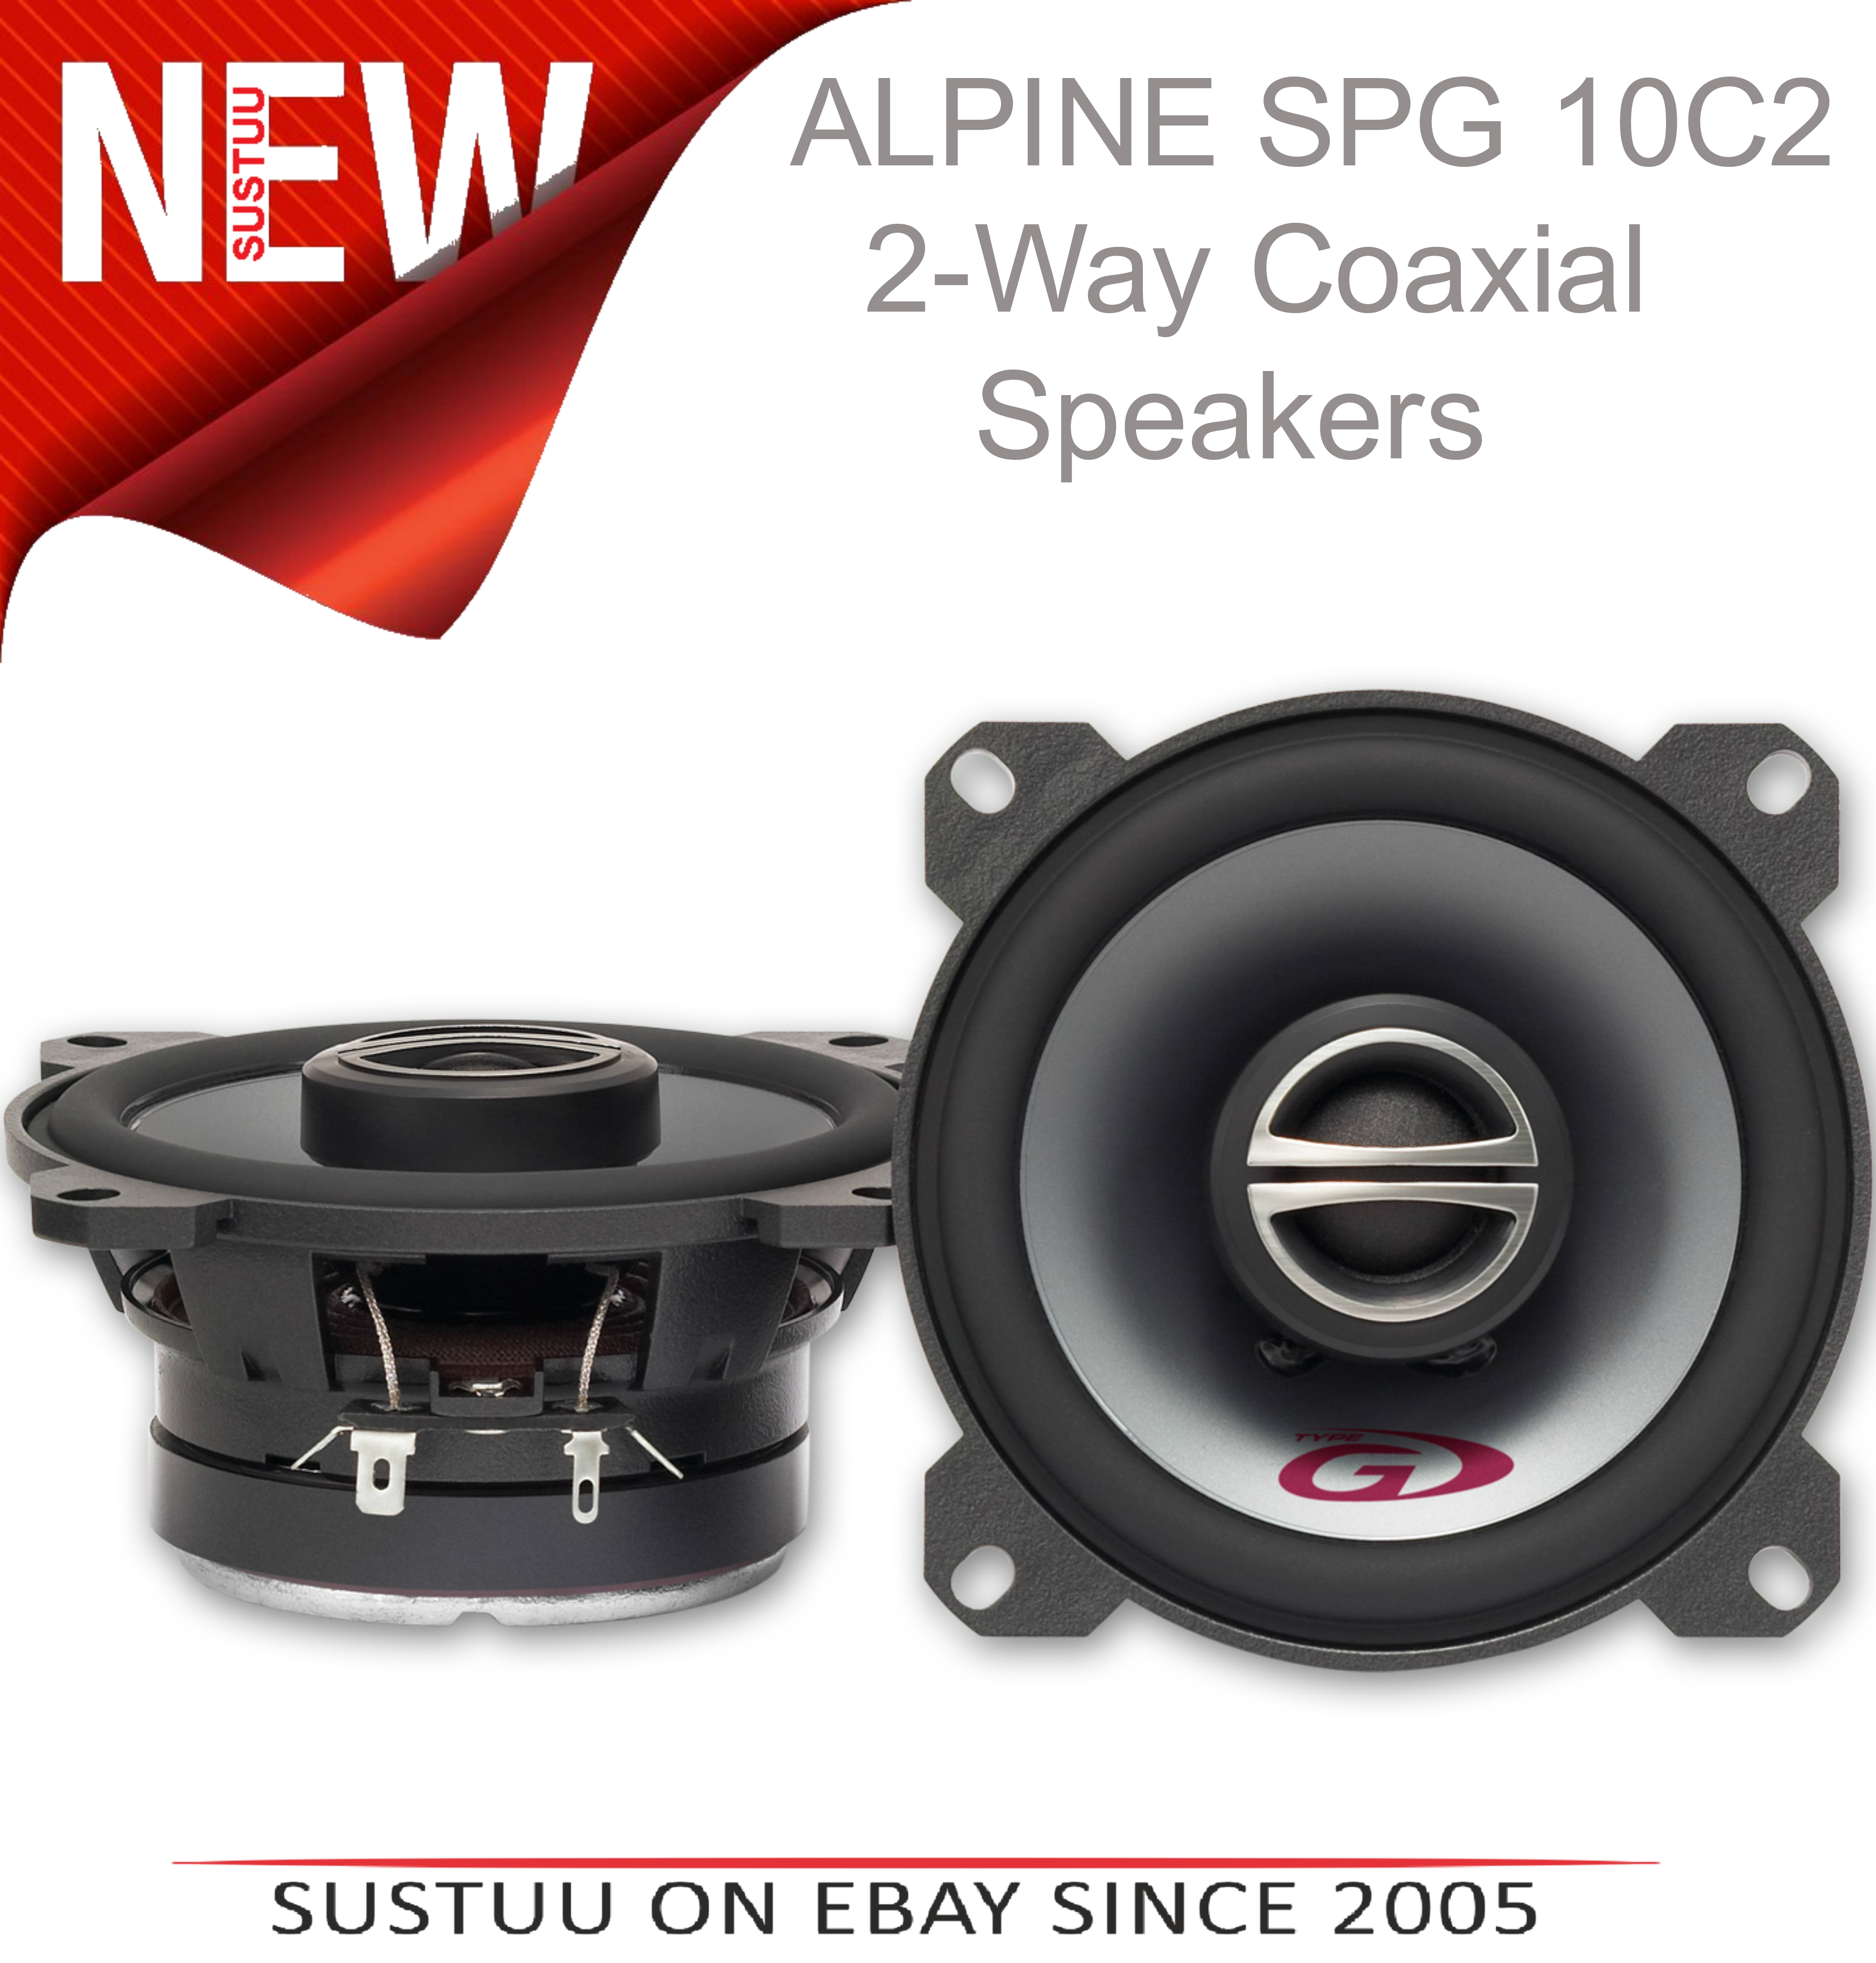 Alpine SPG 10C2|2-Way Coaxial Car Audio Sound Speakers|10cm|180W|1 YEAR WARRANTY